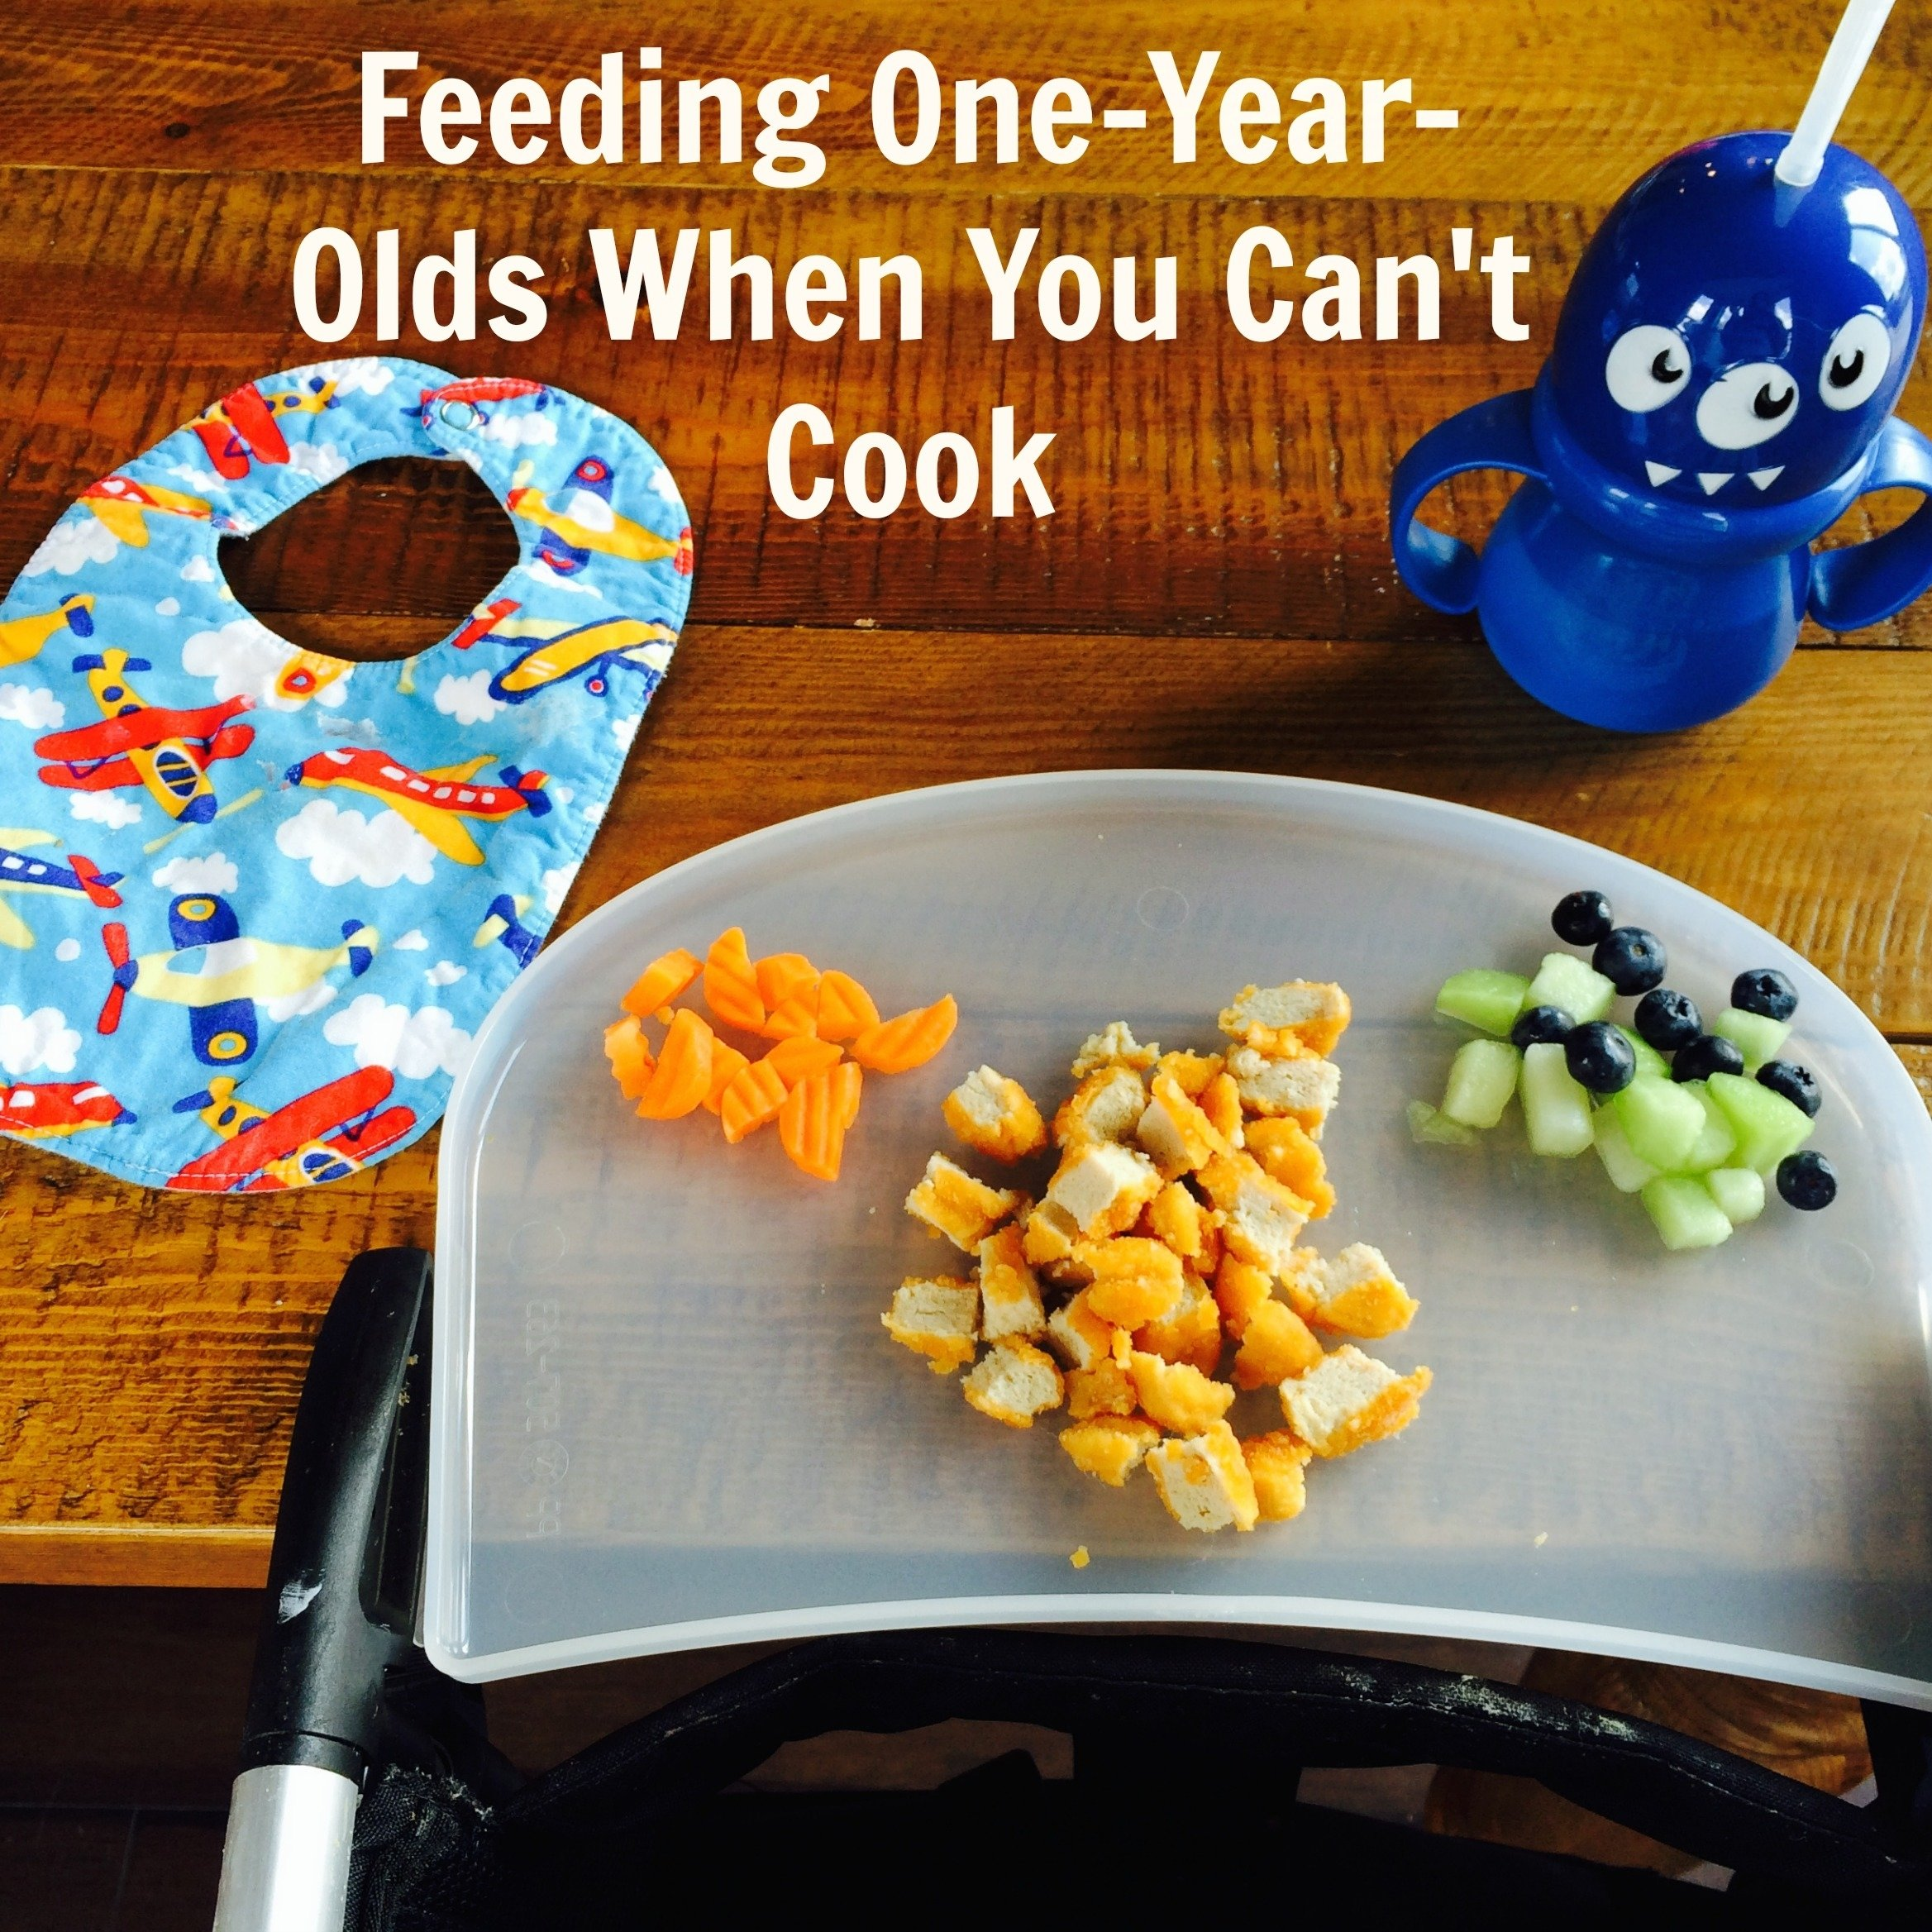 10 Nice Meal Ideas For 12 Month Old feeding one year olds 1 2020